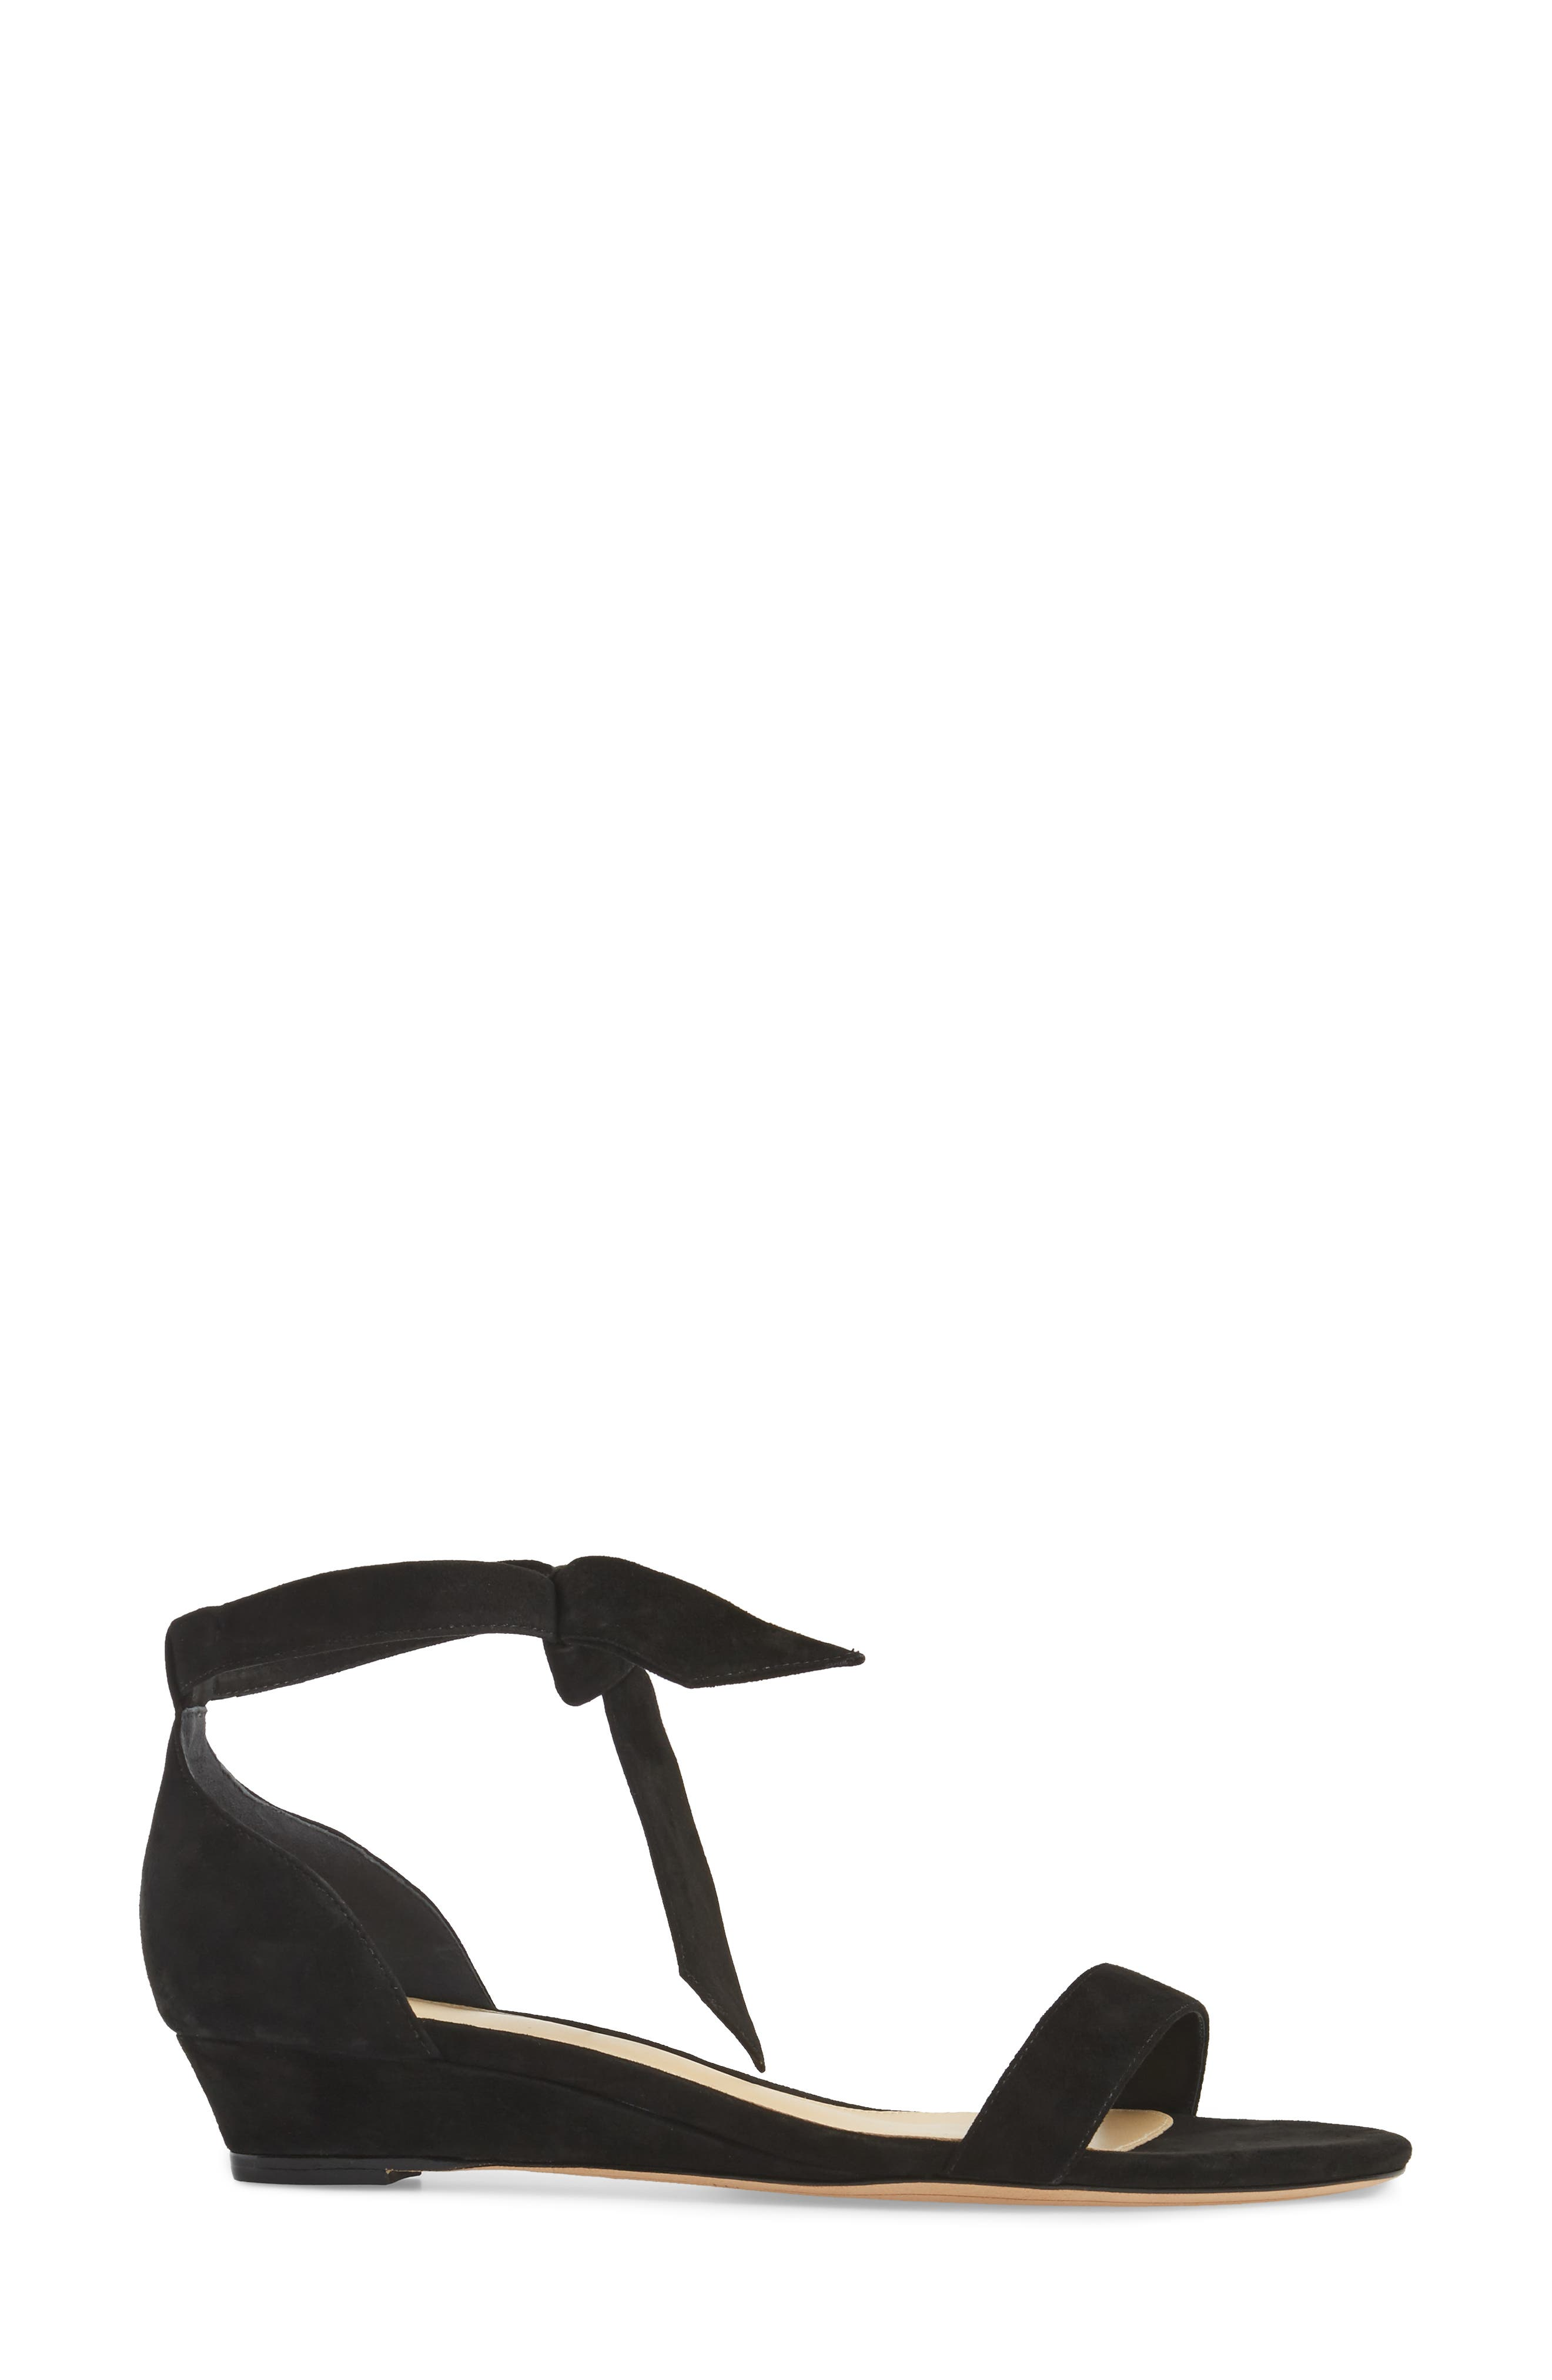 Atena Tie Strap Wedge Sandal,                             Alternate thumbnail 3, color,                             Black Suede